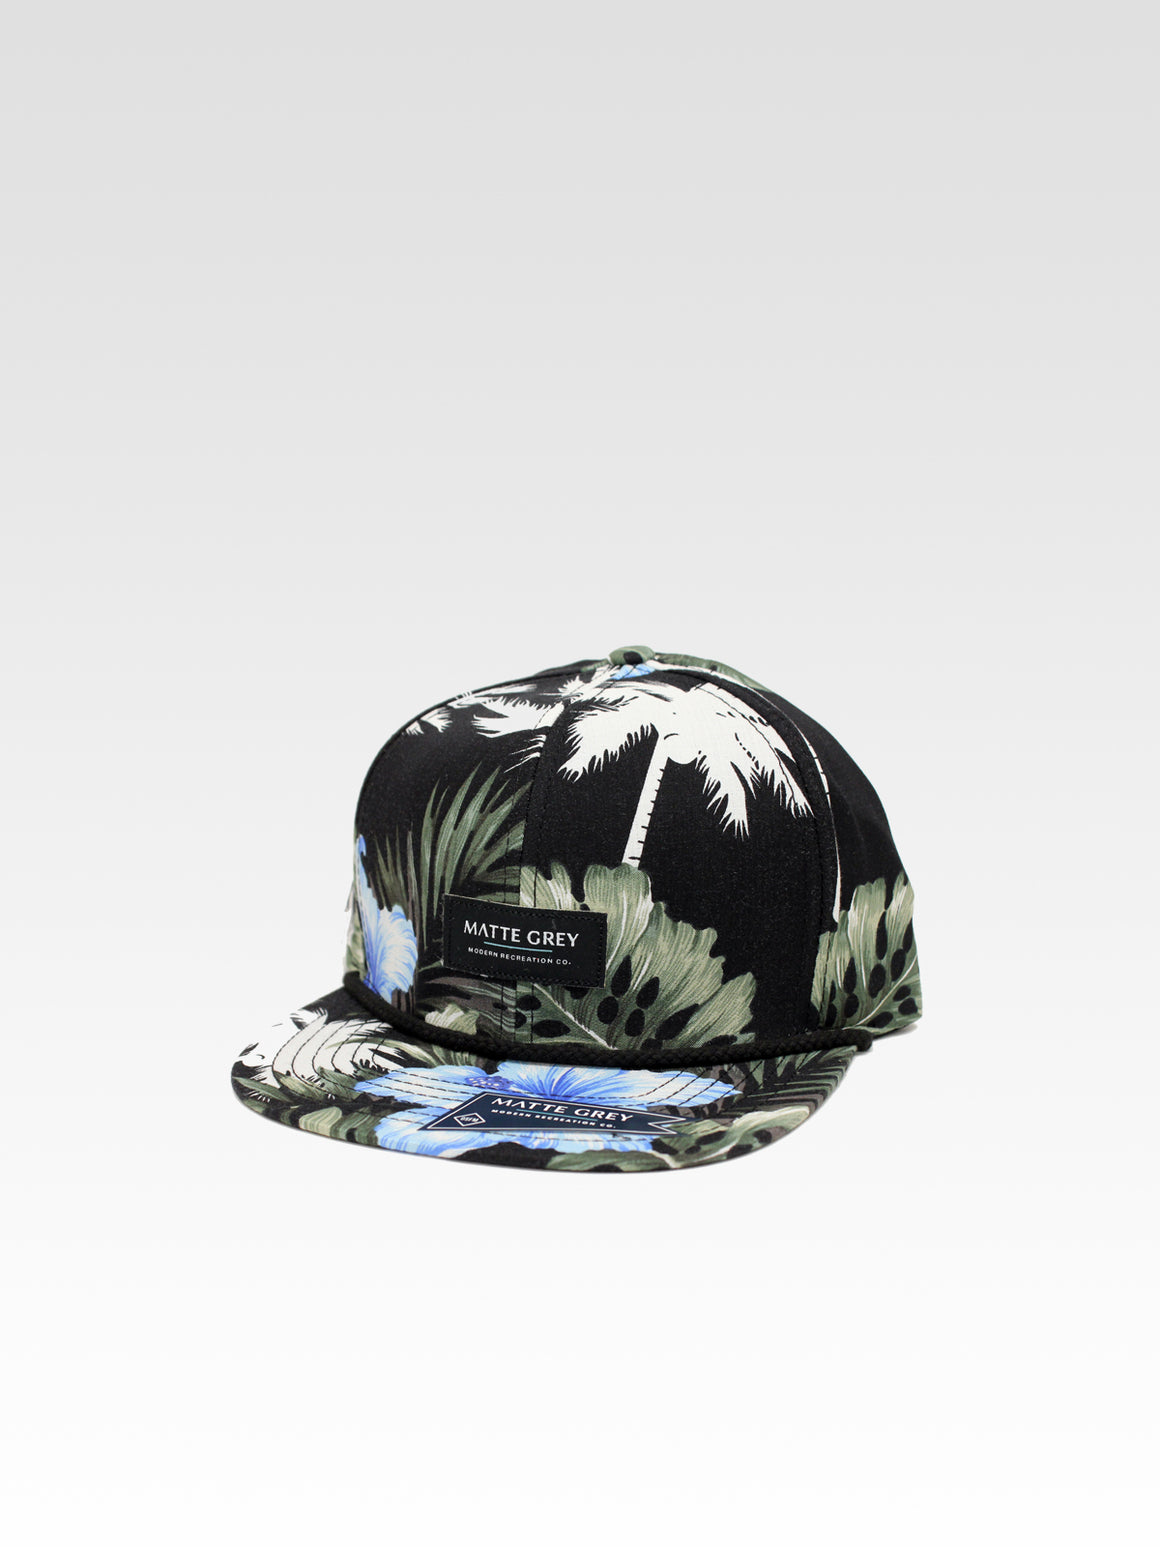 MDRN Aloha Strapback - Black (White Cream / Olive / Light Denim)